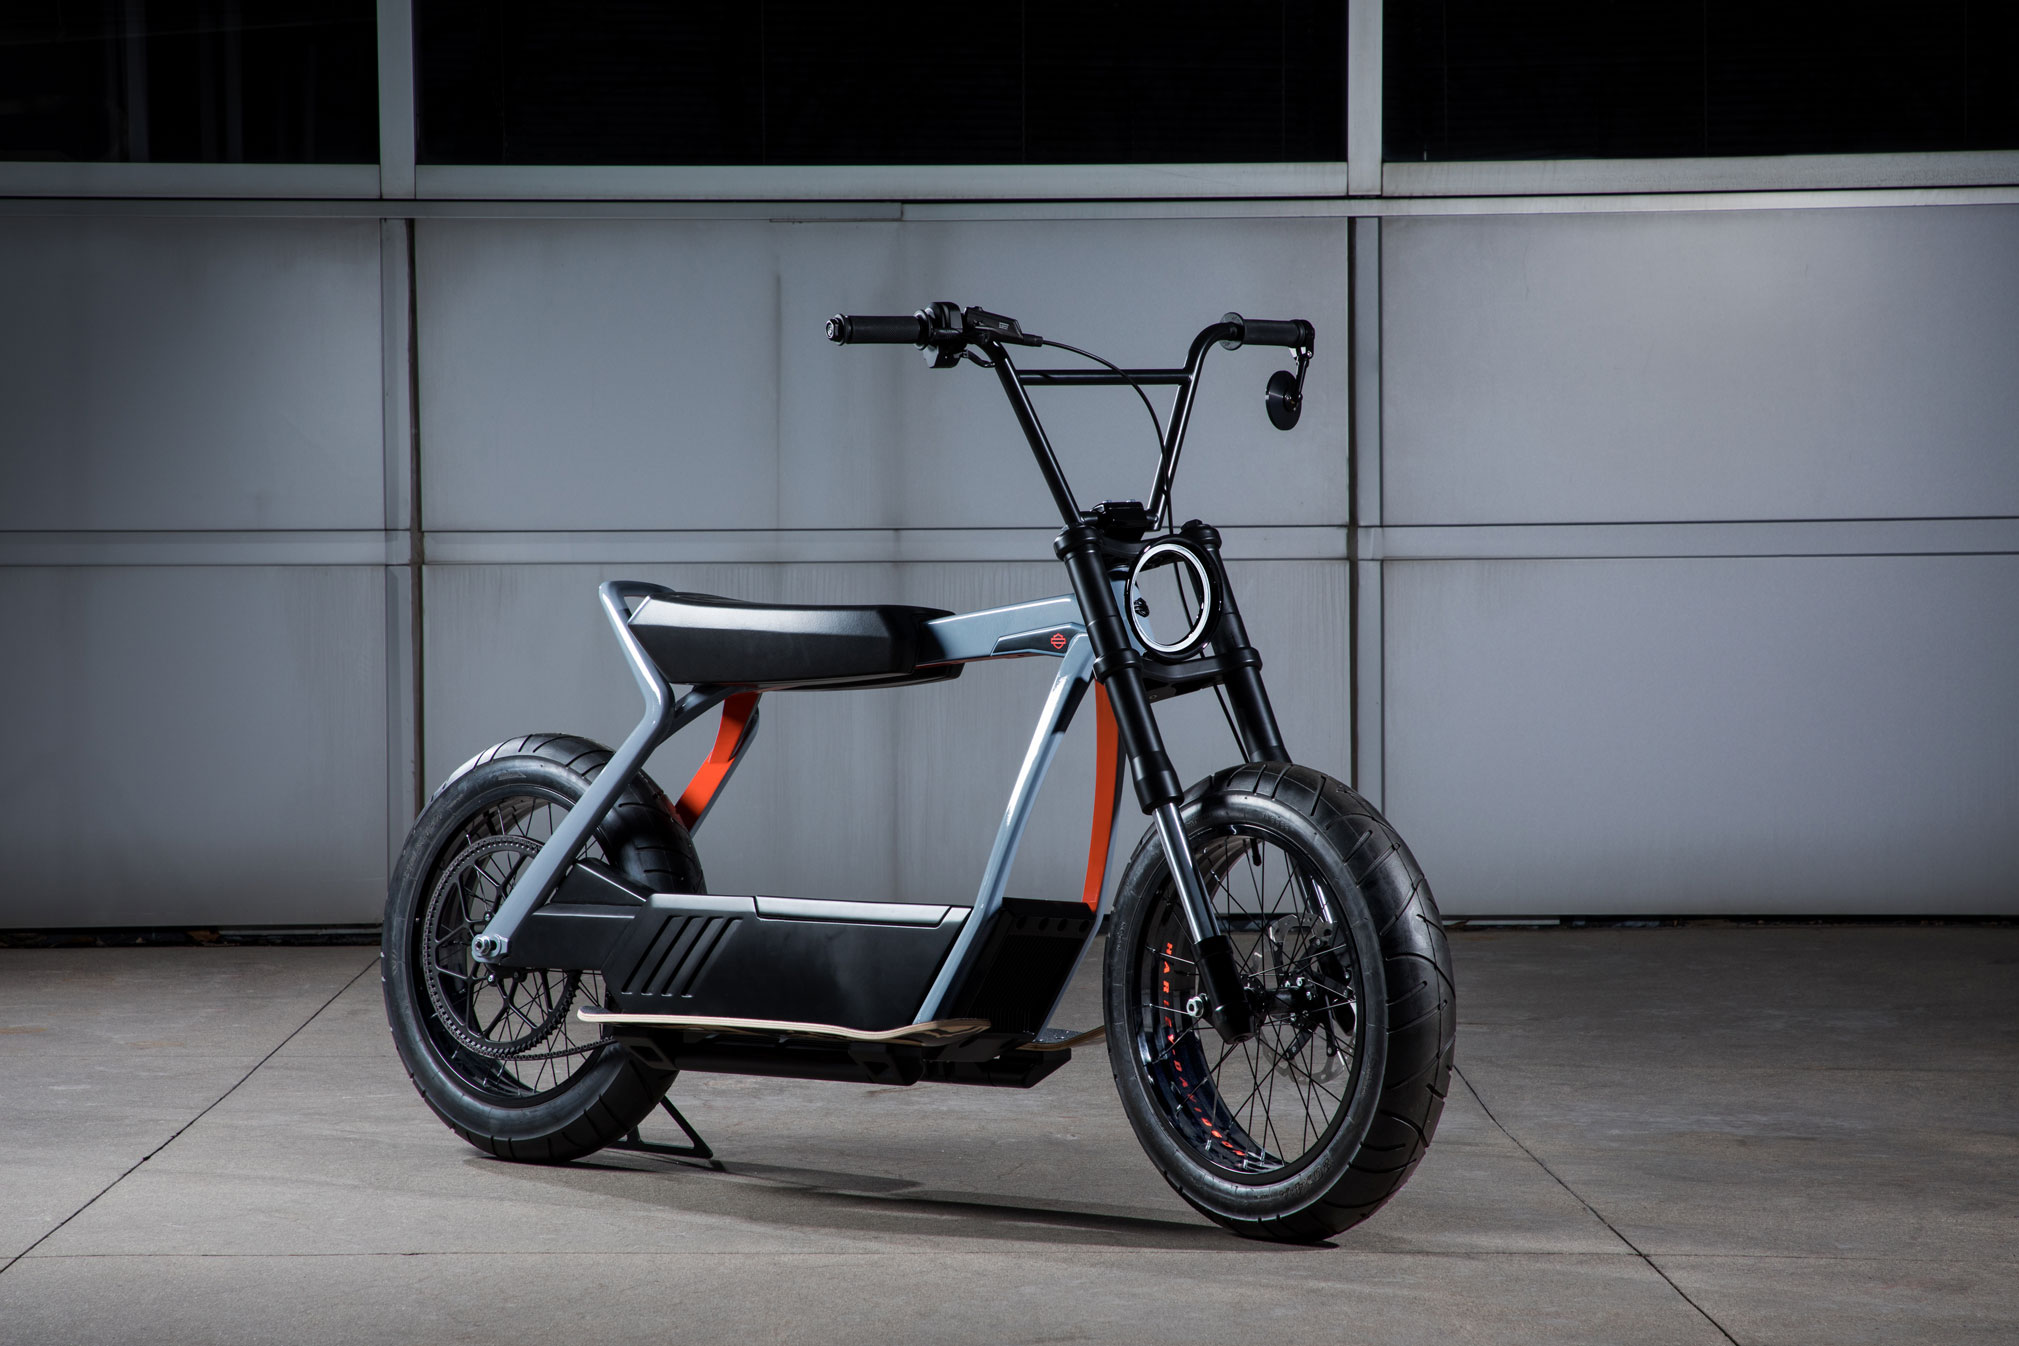 2020 Harley Davidson Electric Scooter Guide Total Motorcycle